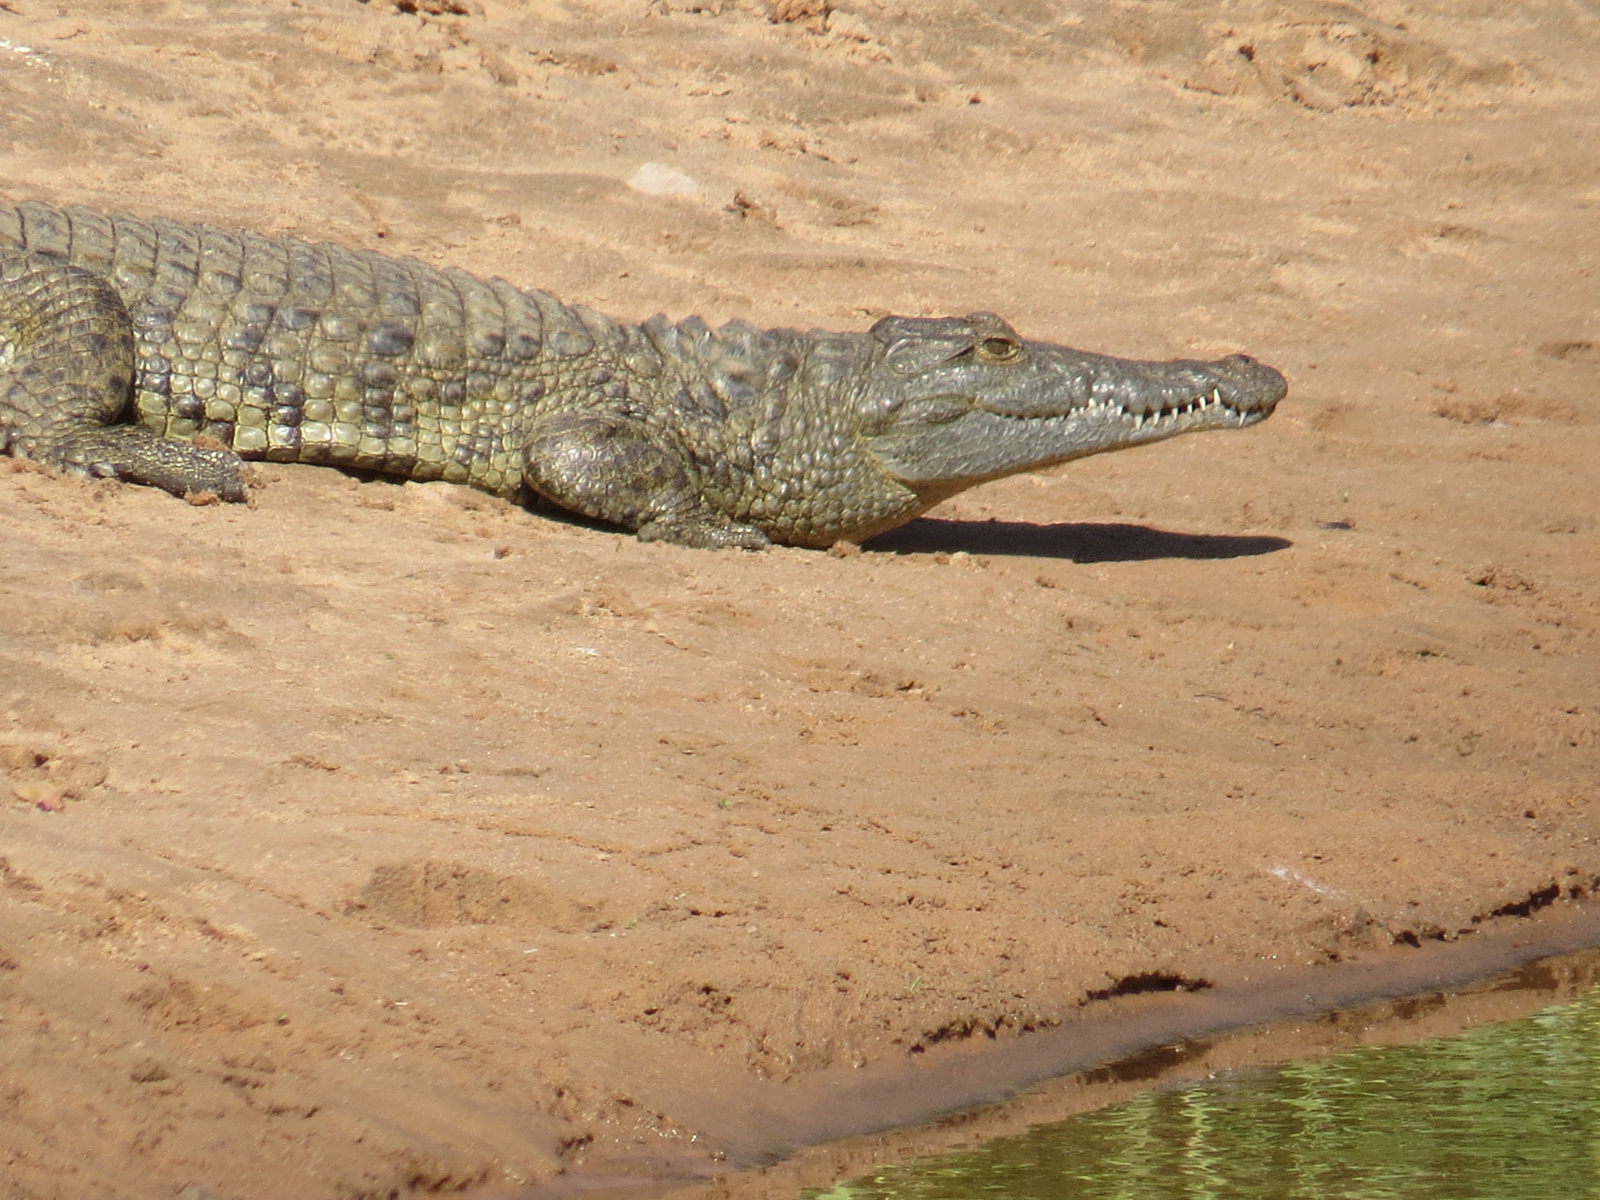 Crocodile. Photo by Chivic African Safaris